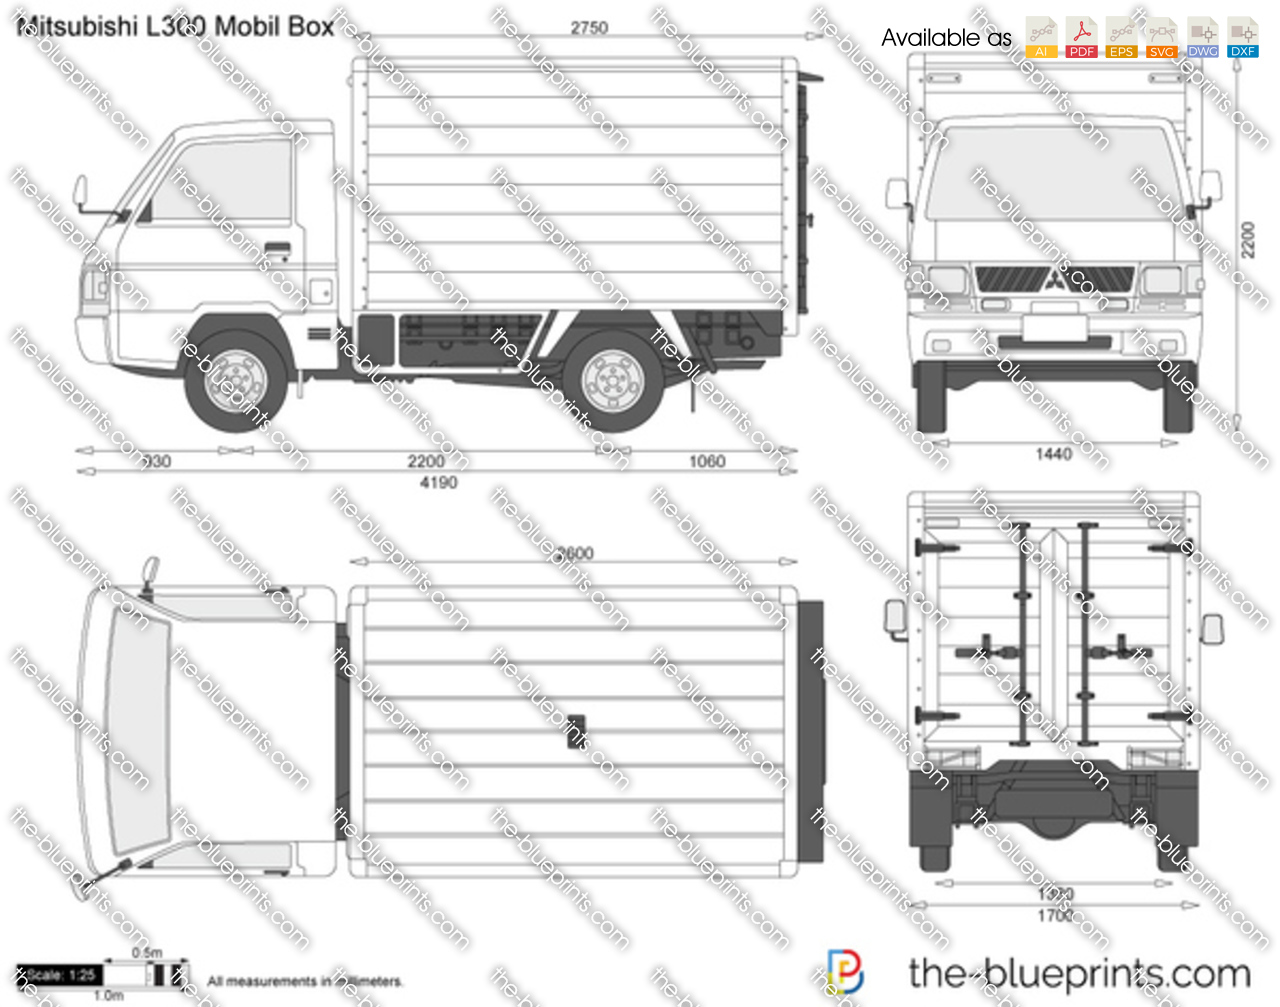 Mitsubishi L300 Mobil Box Vector Drawing